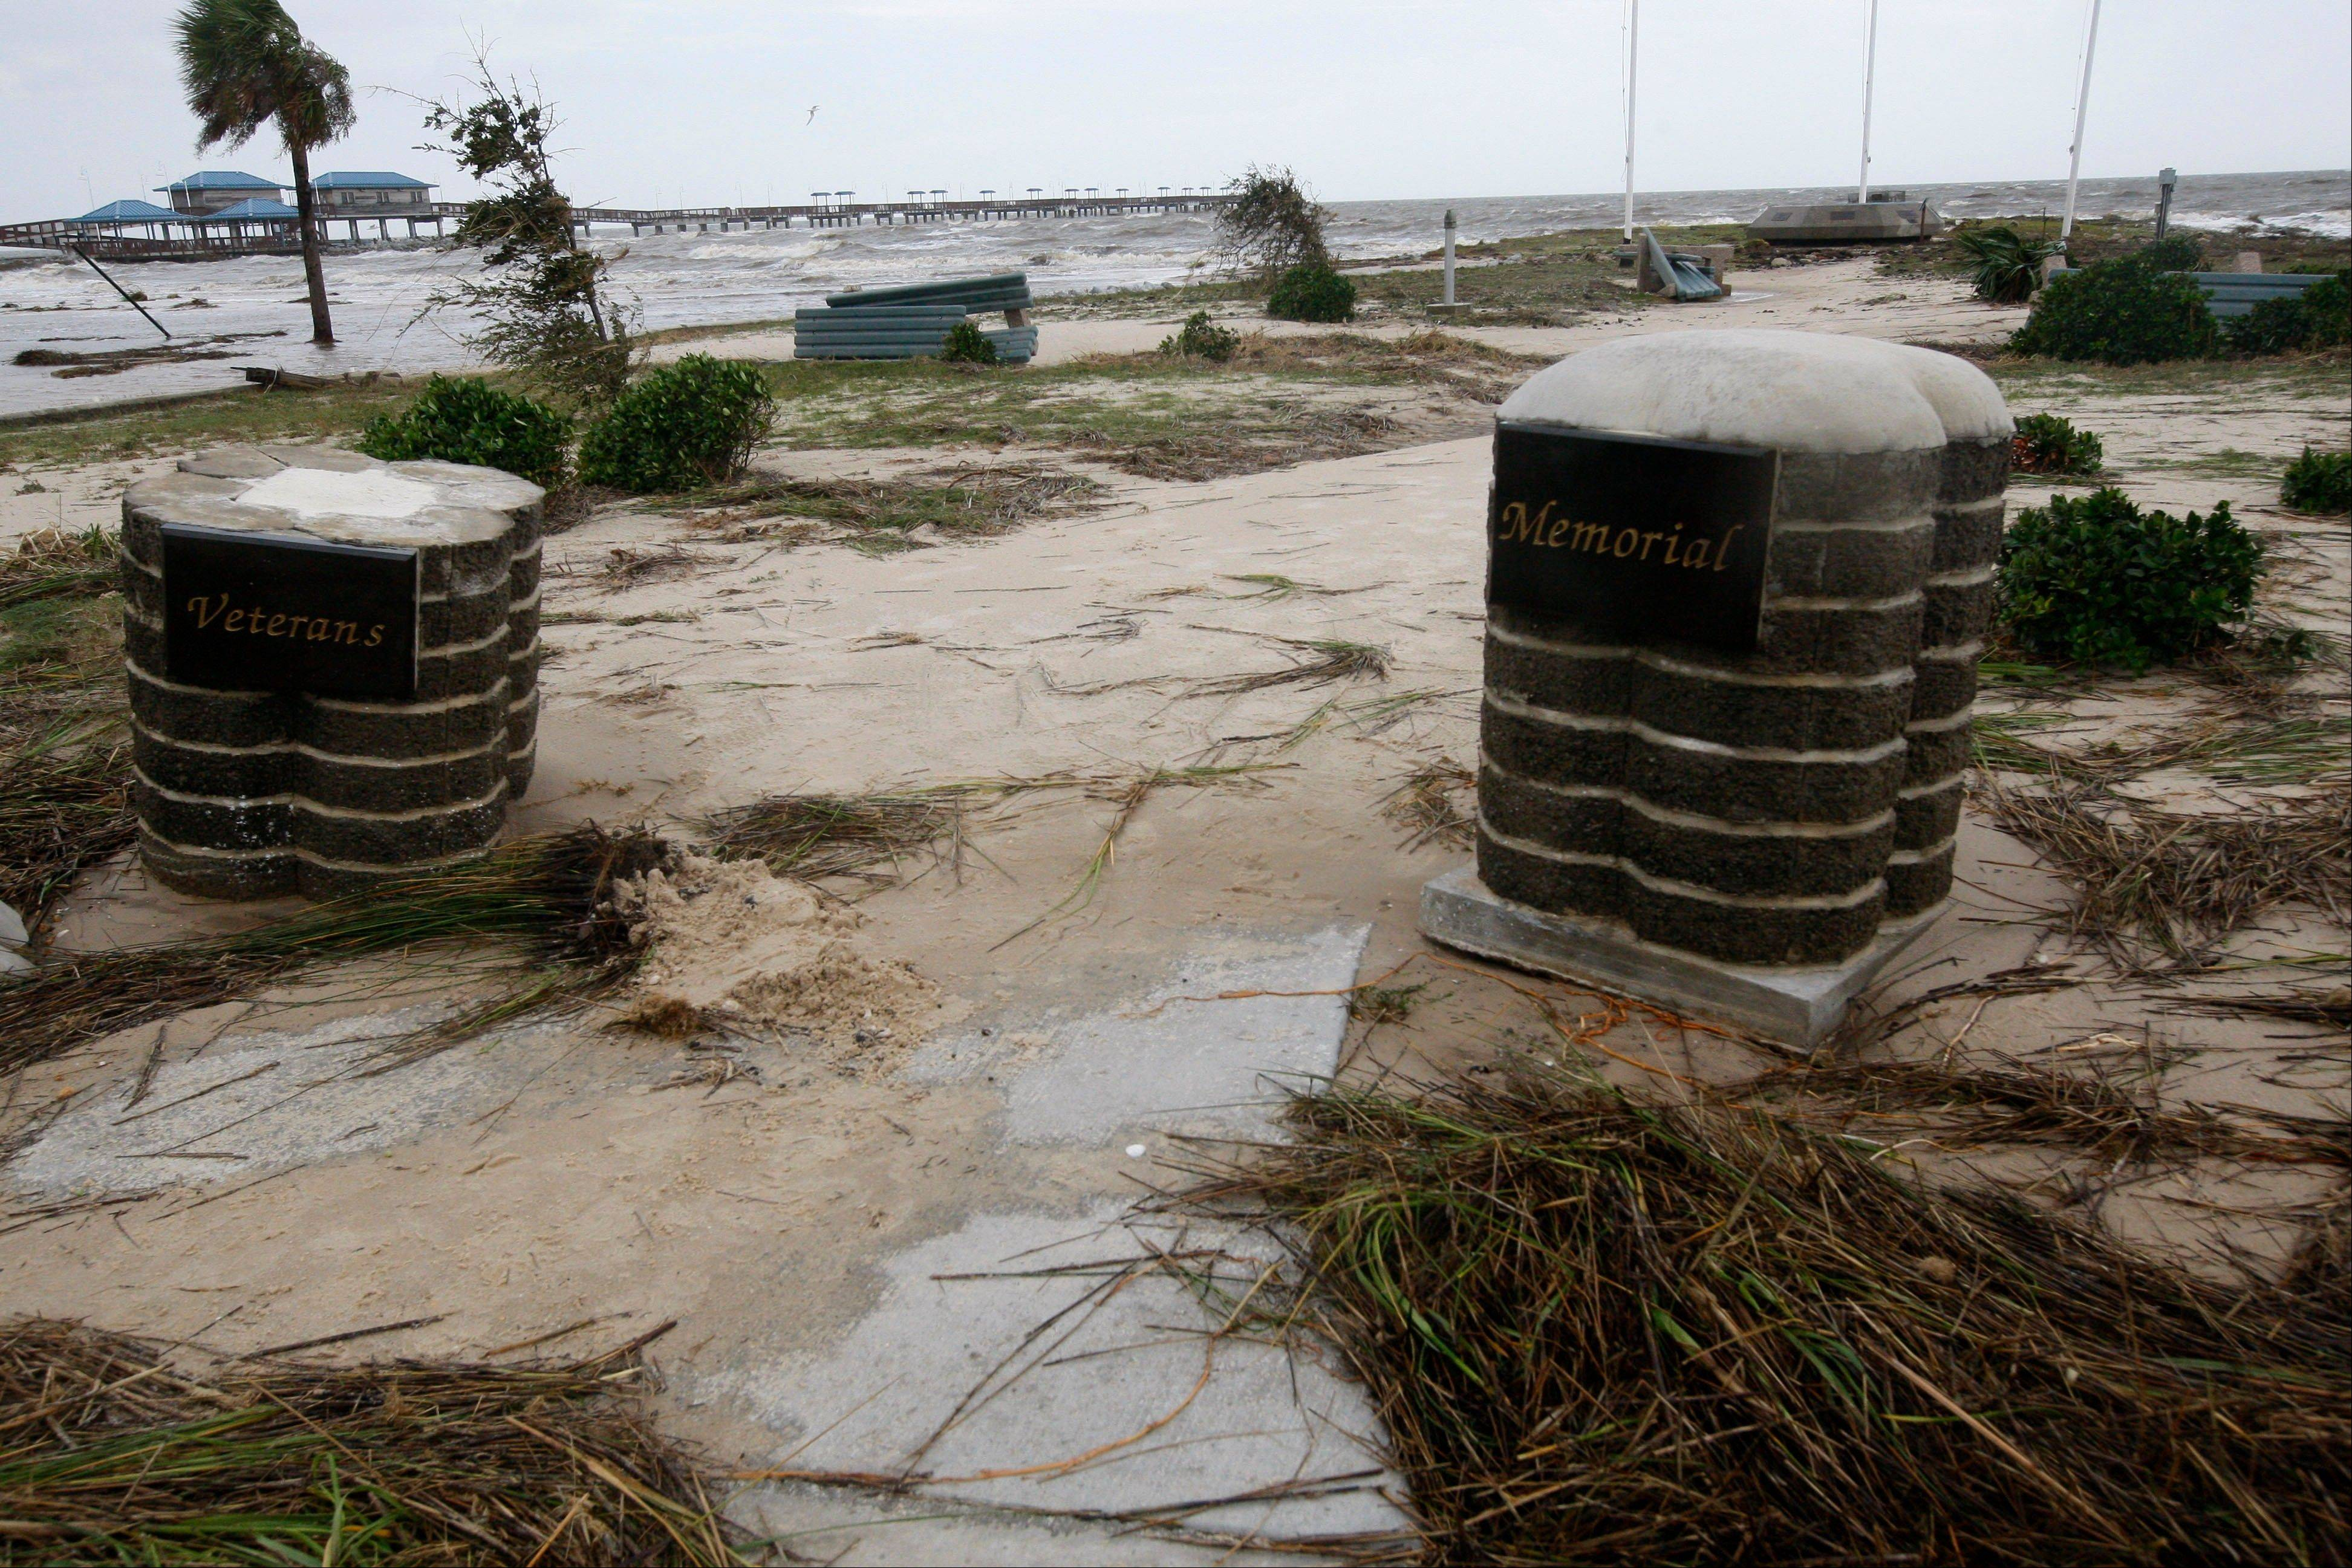 Hurricane Isaac heavily damaged the Veterans Memorial along the seawall in Waveland, Miss., Thursday, Aug. 30, 2012.